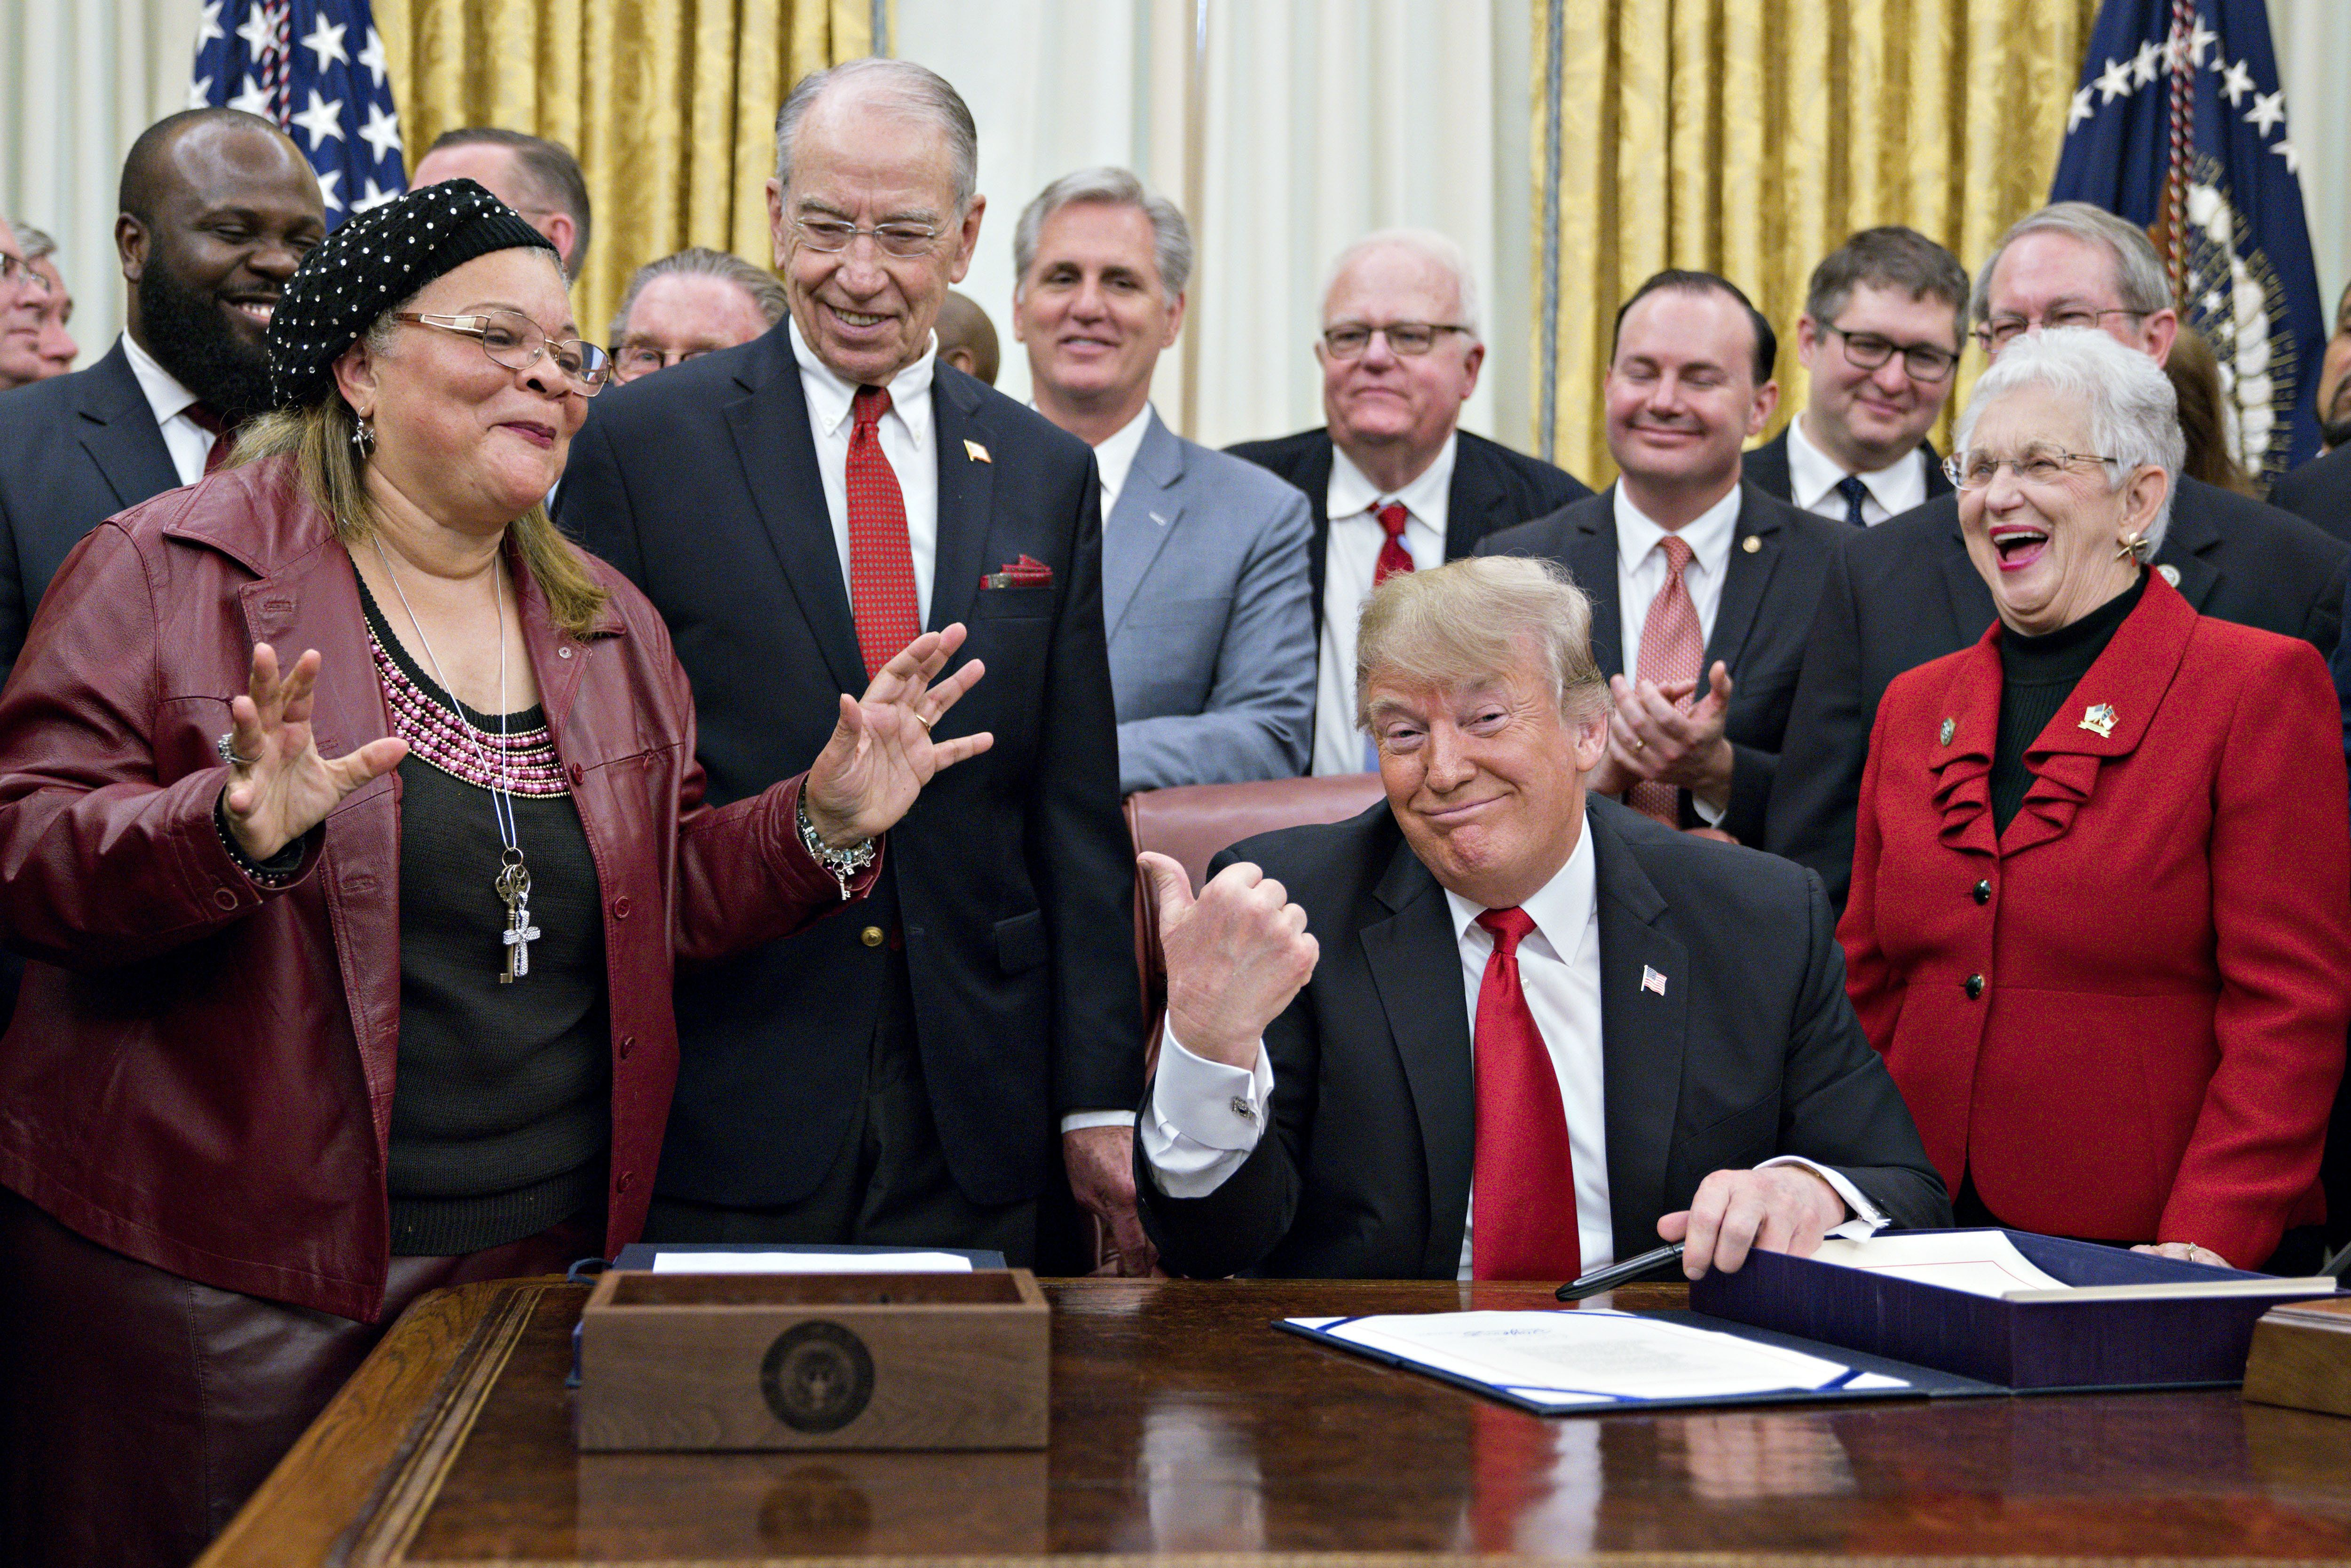 U.S. President Donald Trump, center, gestures as Alveda King, niece of Reverend Martin Luther King Jr., speaks during a signing ceremony for S. 756, First Step Act and H.R. 6964, Juvenile Justice Reform Act with Senator Chuck Grassley, a Republican from Iowa, second left, and Representative Virginia Foxx, a Republican from North Carolina, right, in the Oval Office of the White House in Washington, D.C., U.S., on Friday, Dec. 21, 2018. The U.S. House this week overwhelmingly passed sweeping legislation to replace decades of rigid war-on-crime sentences in the U.S. criminal justice system with more flexible guidelines for judges and aid to nonviolent offenders preparing for life outside prison. Photographer: Andrew Harrer/Bloomberg via Getty Images